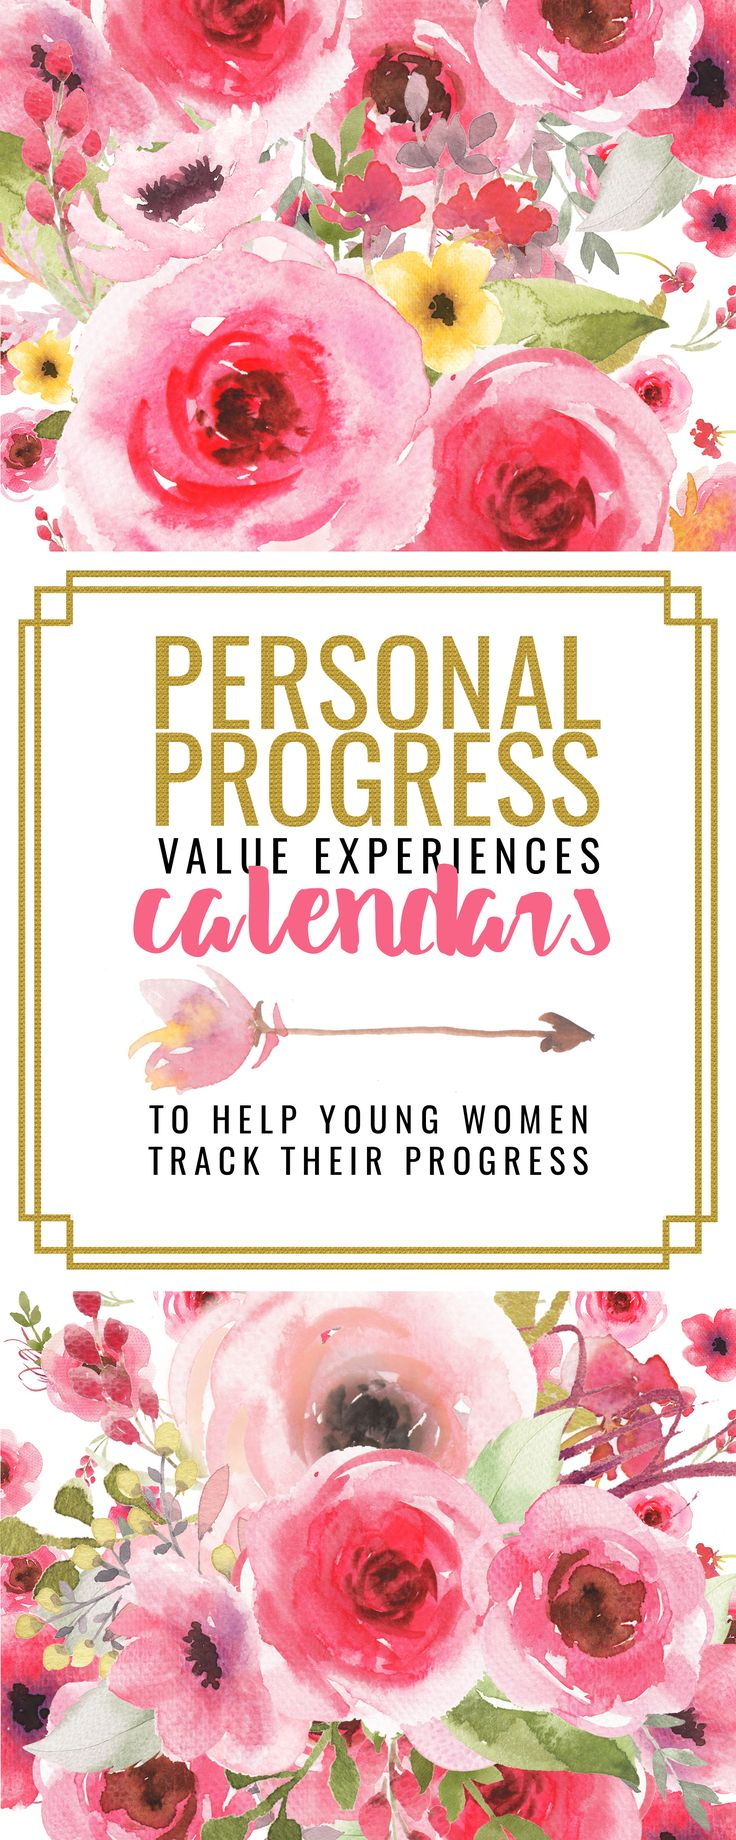 Personal Progress Value Experiences Calendars